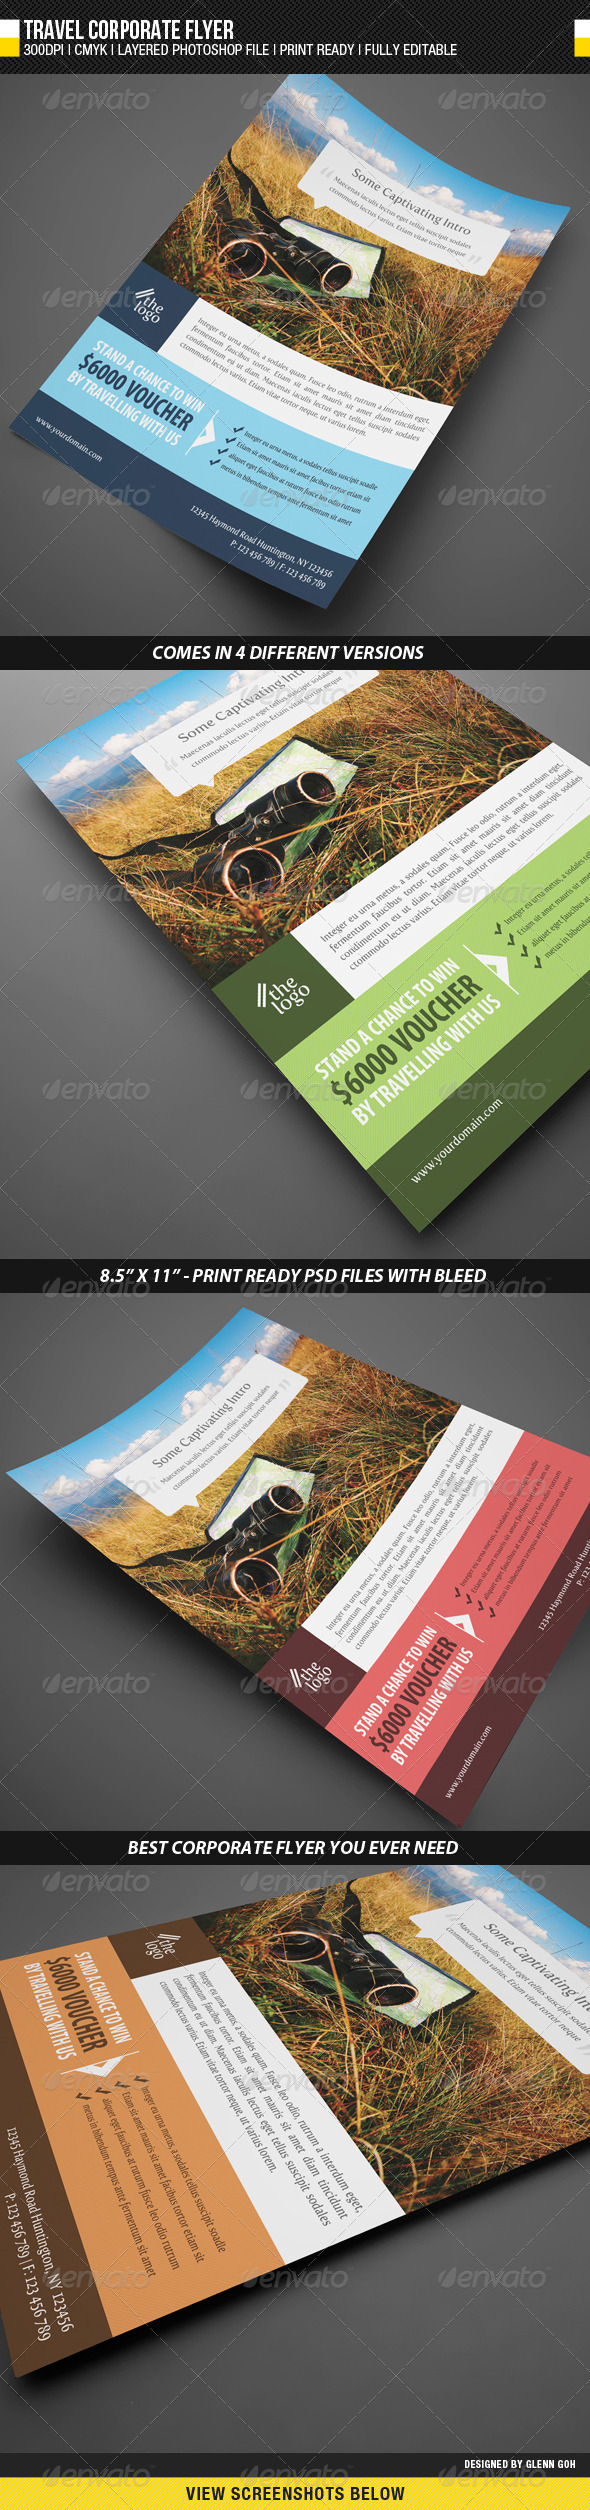 GraphicRiver Travel Corporate Flyer 1690390